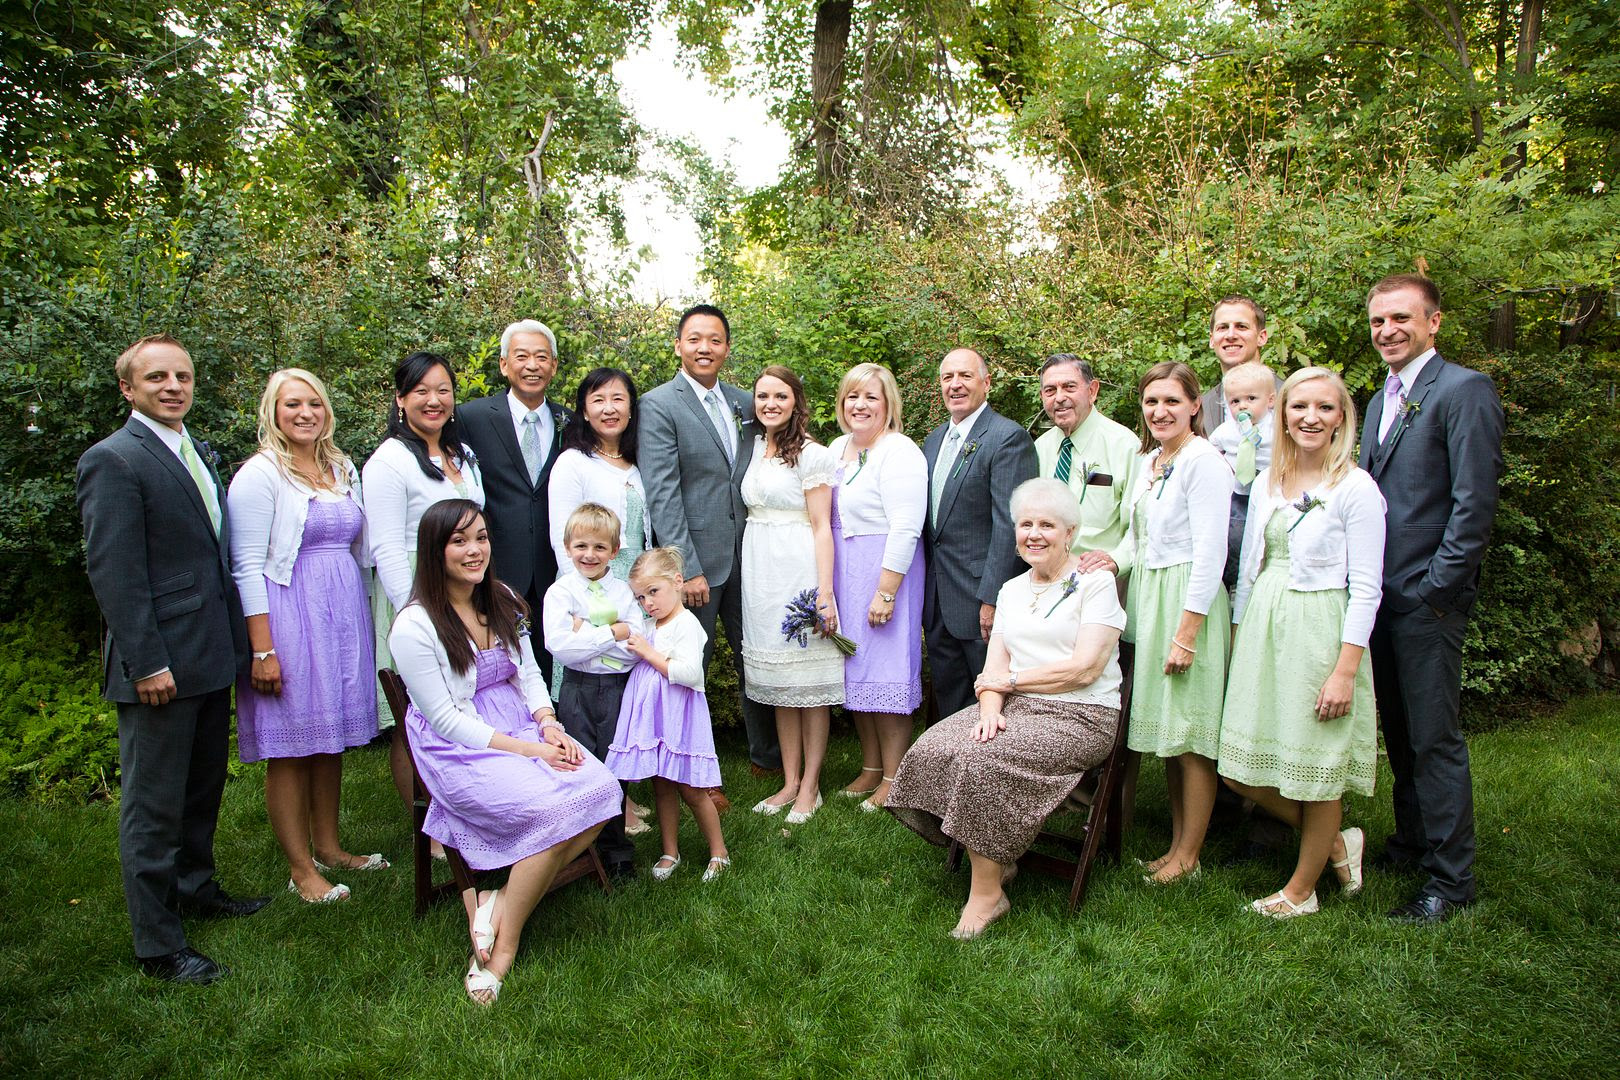 The Whole Family in Charla's Backyard photo emilybrownphotography_MichelleampMike_022_zps36ebb0c1.jpg